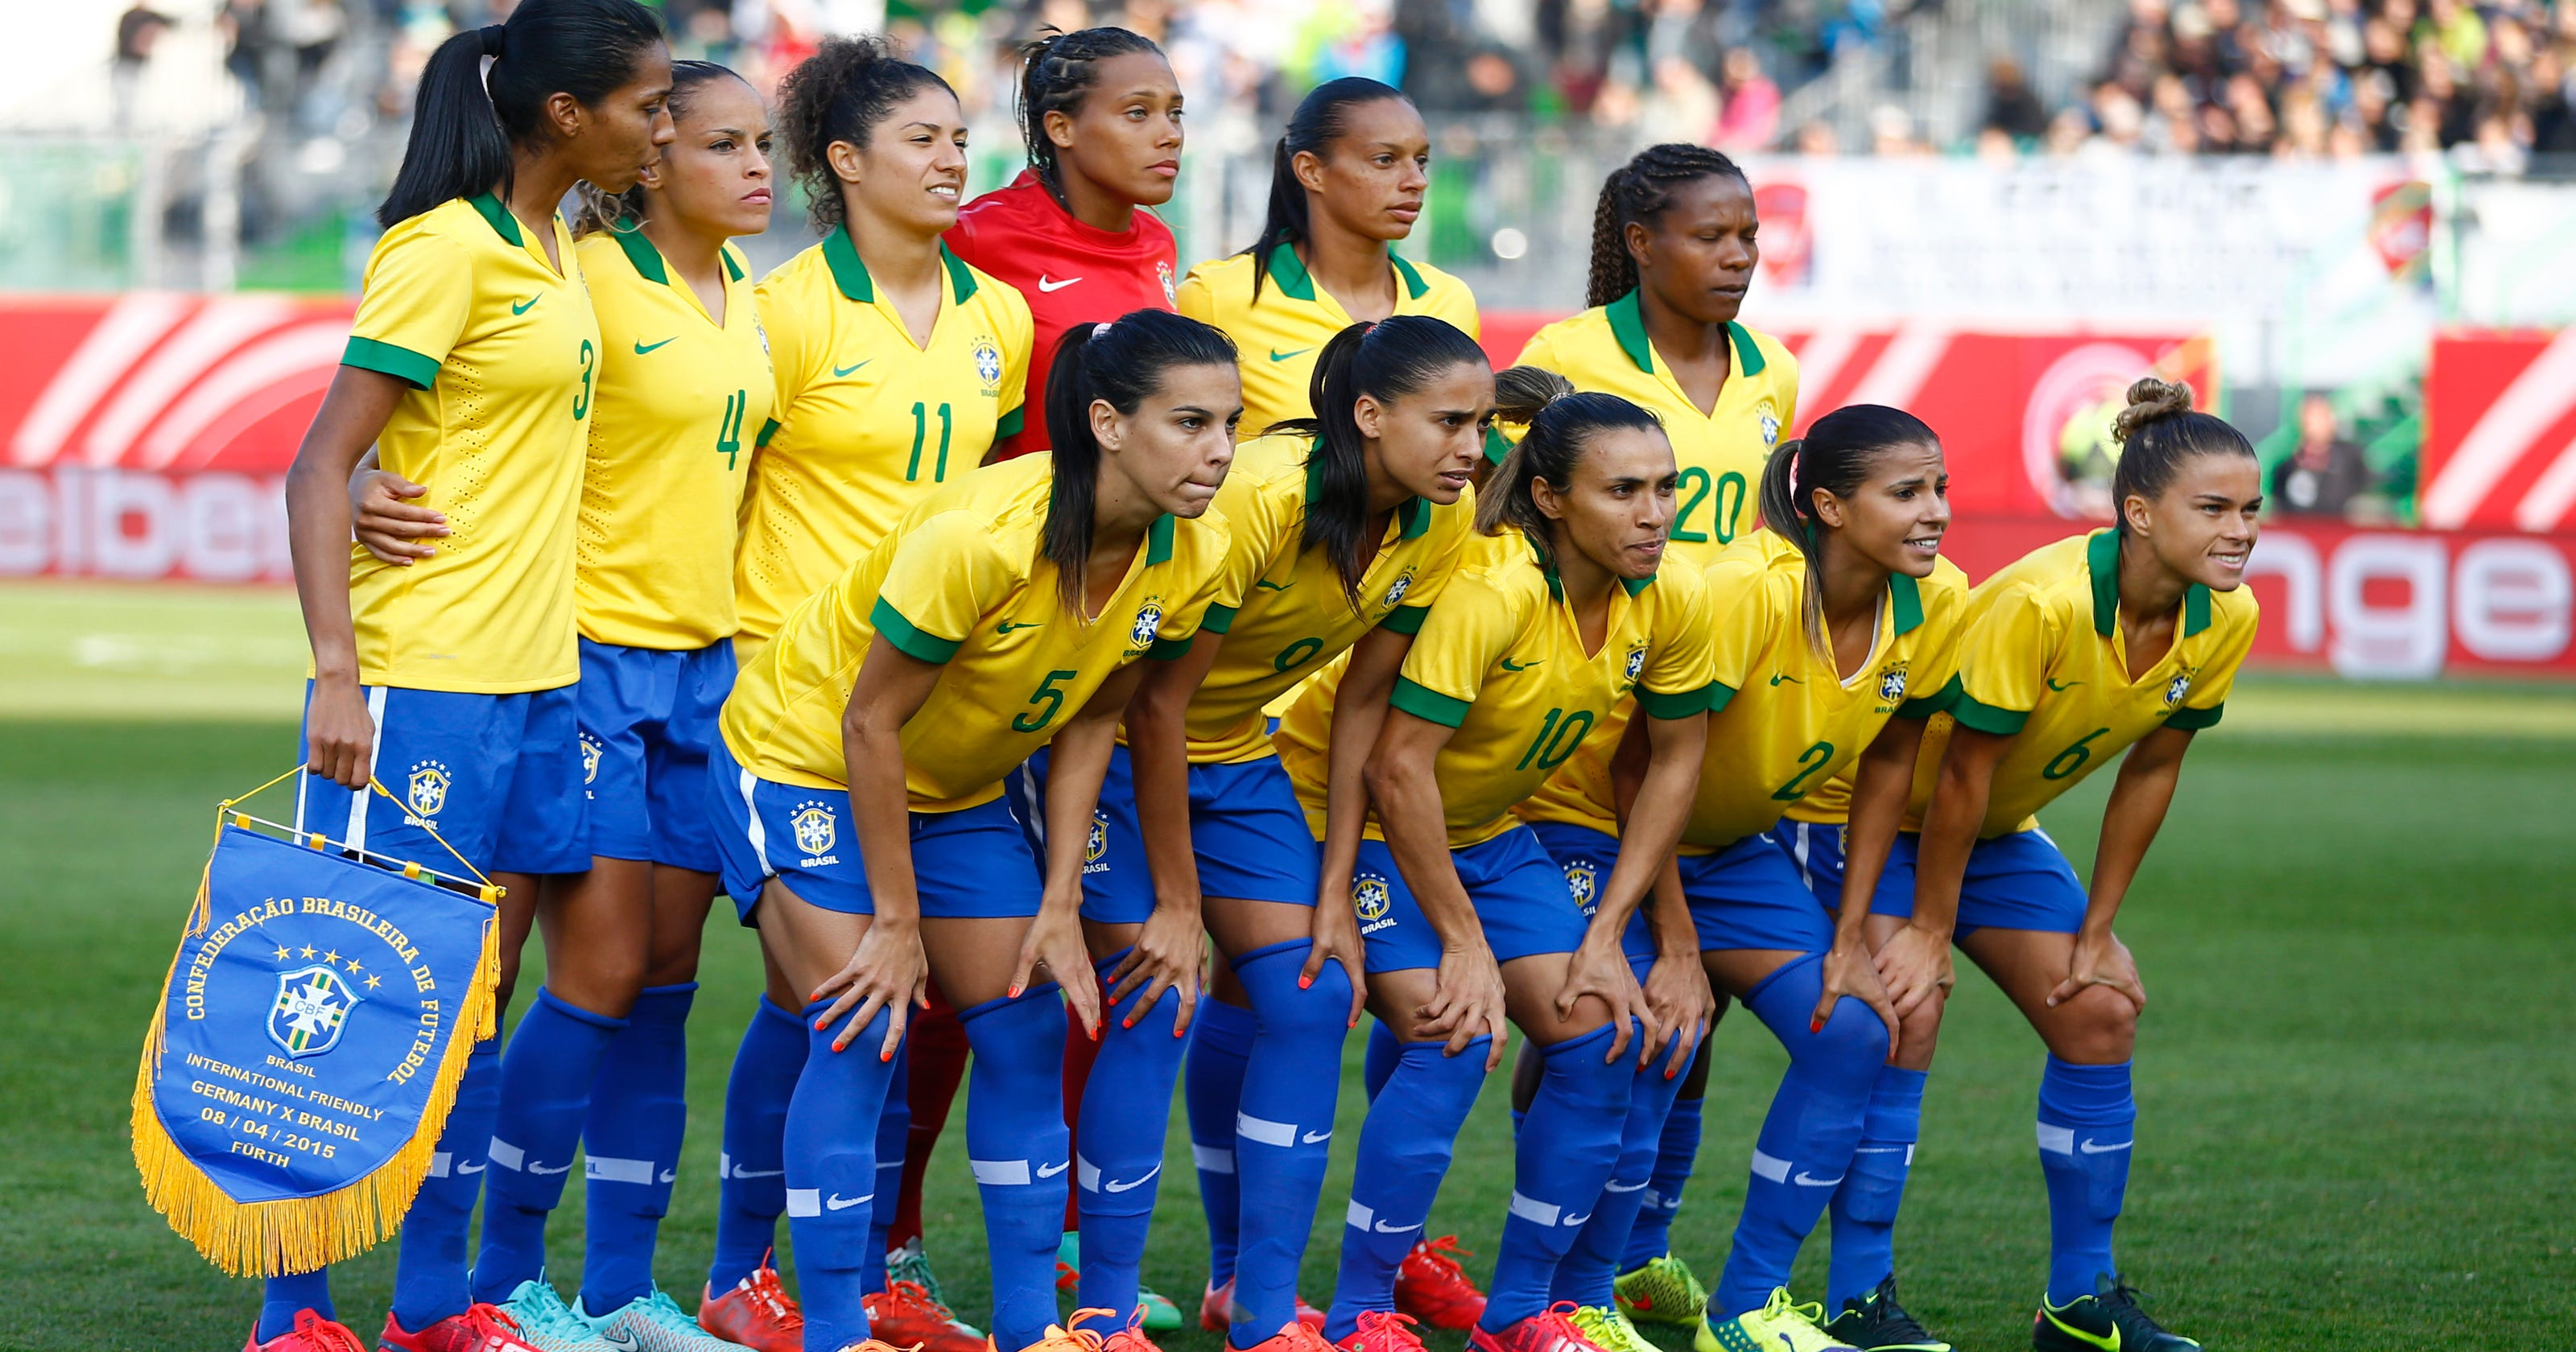 aaf0ddac140 Brazil behind times when it comes to embracing women s soccer